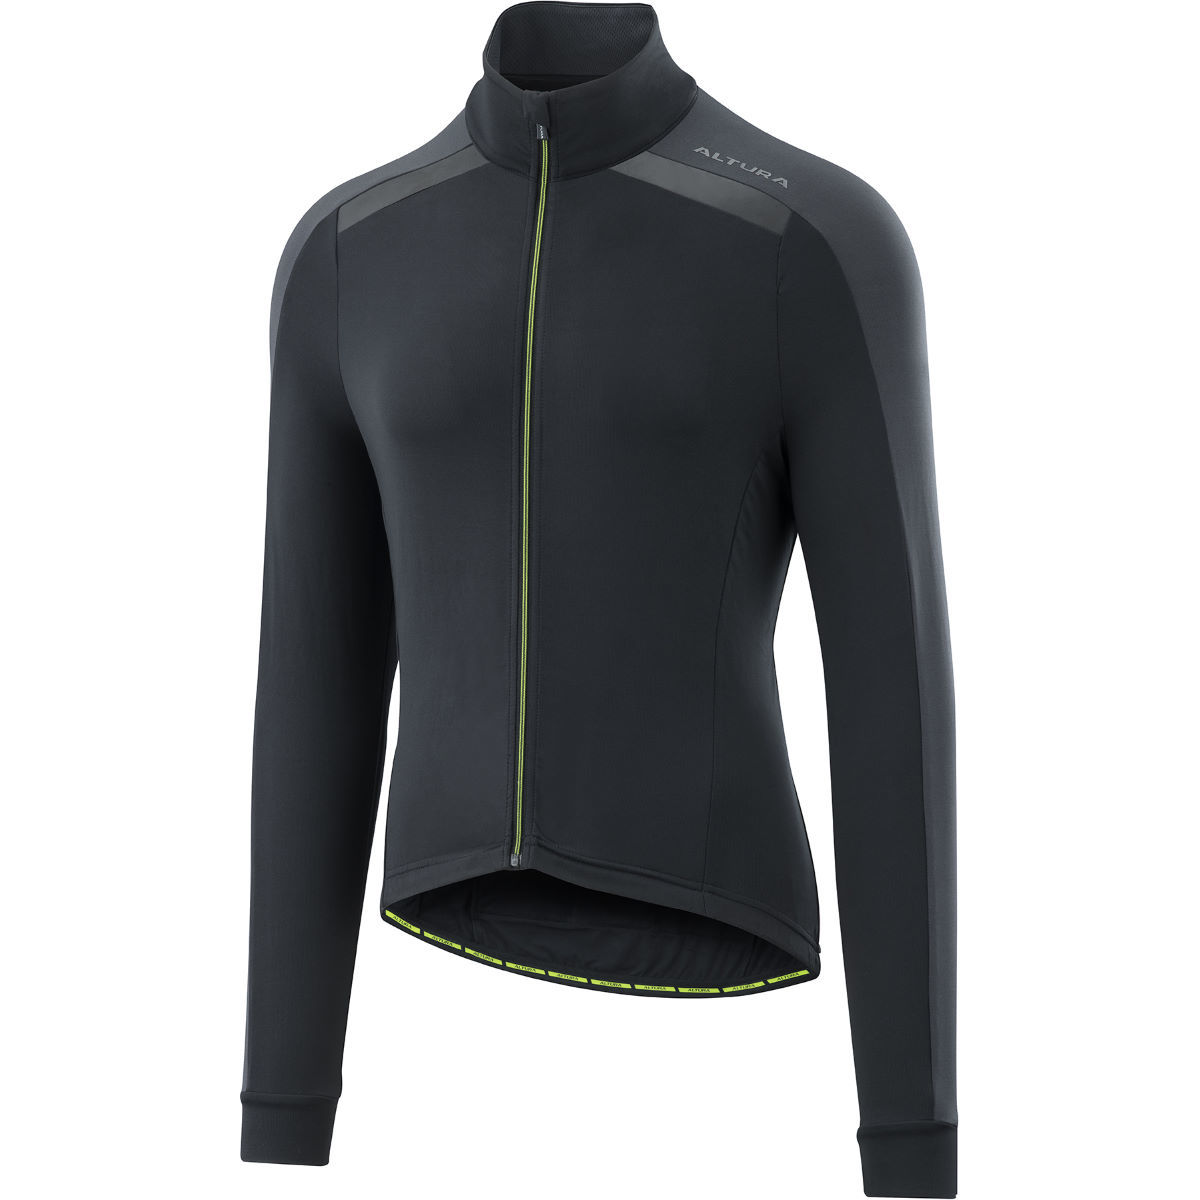 Altura Thermostat Jersey - Black in all Sizes. REDUCED AGAIN